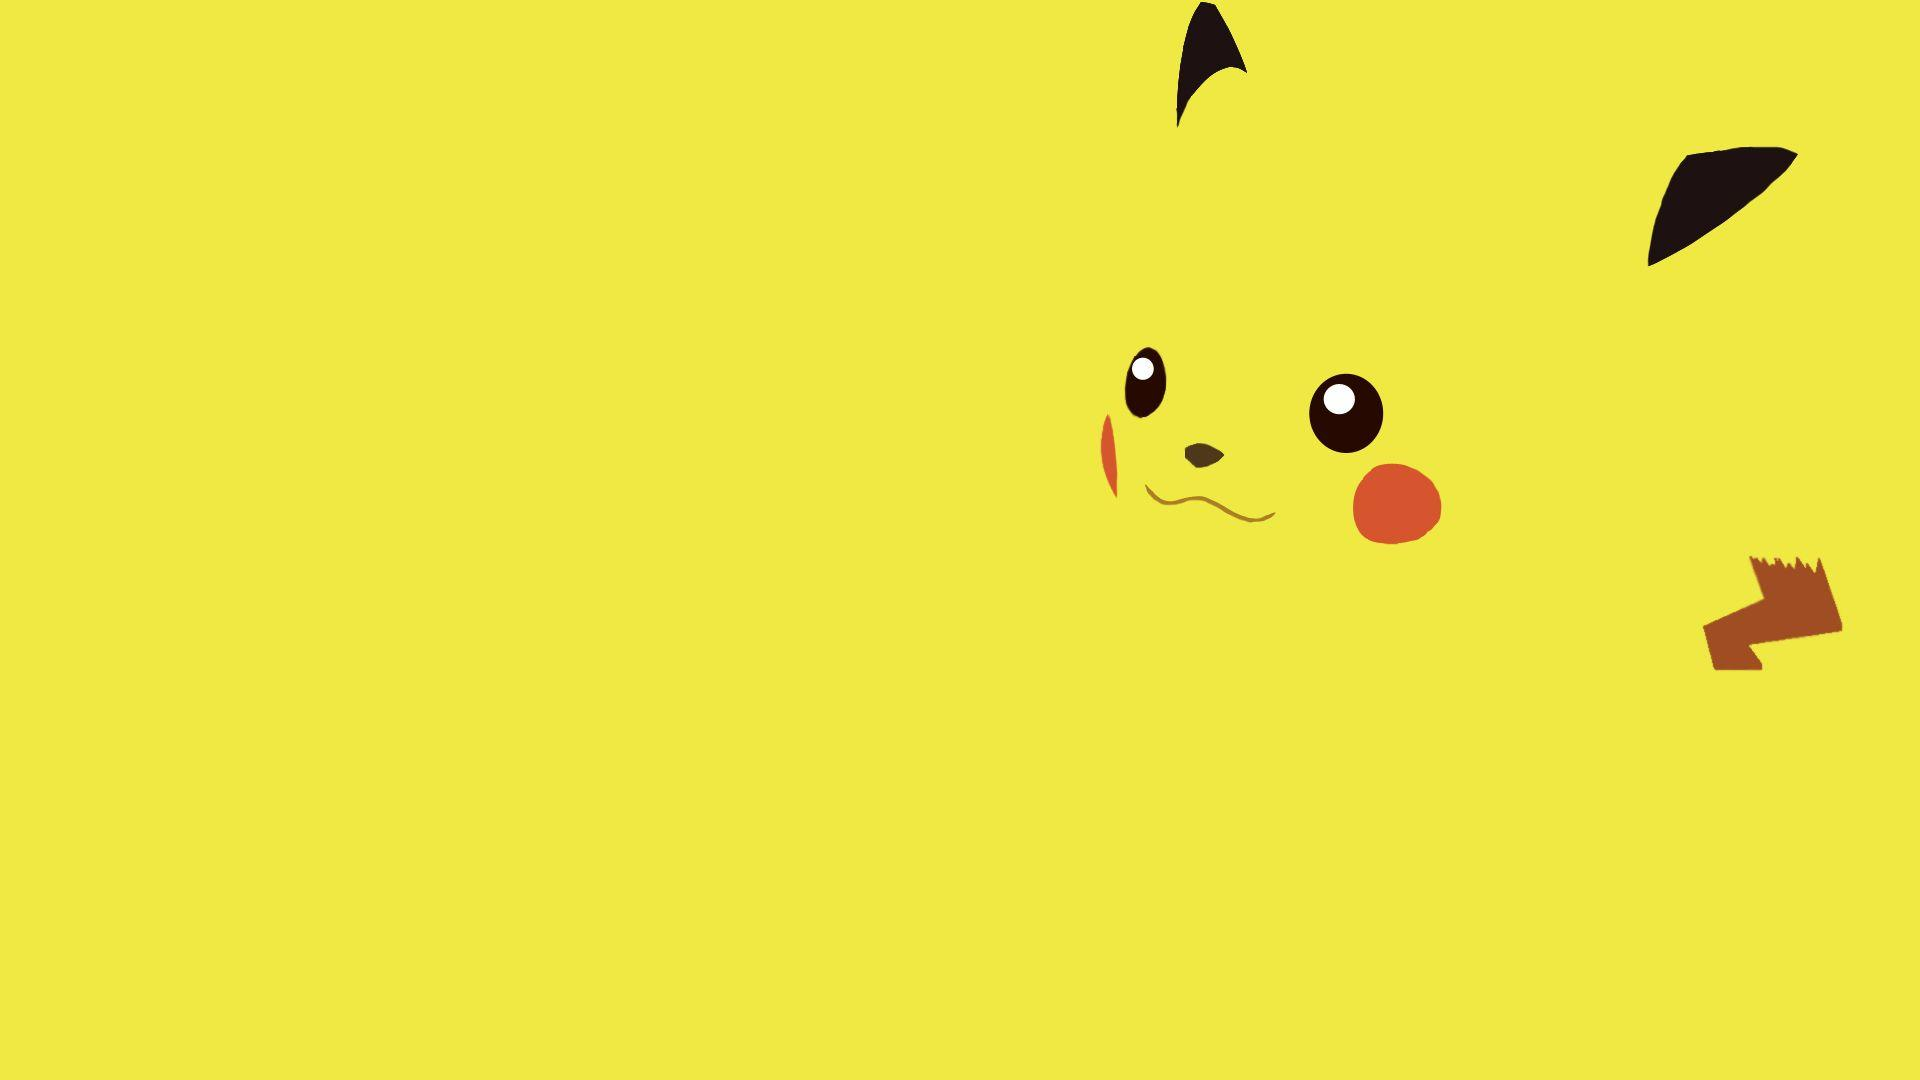 Pokémon Pikachu Wallpapers - Wallpaper Cave